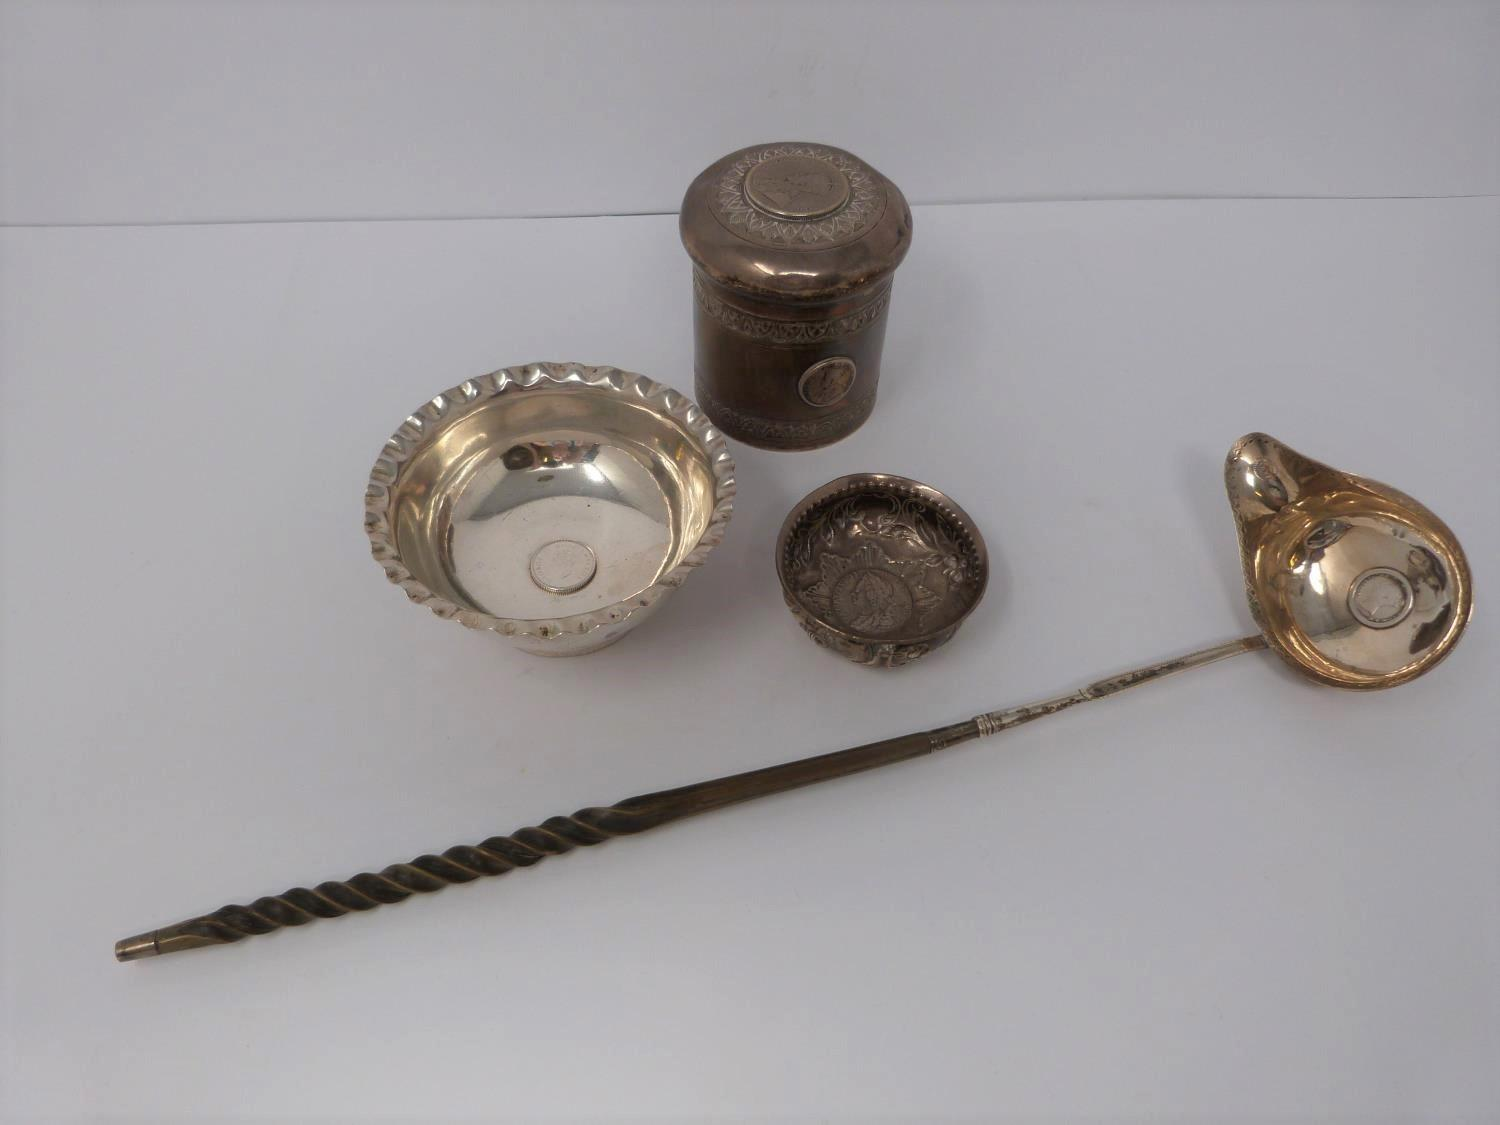 A collection of white metal dishes and a box decorated with coins and a silver and horn twist handle - Image 2 of 13